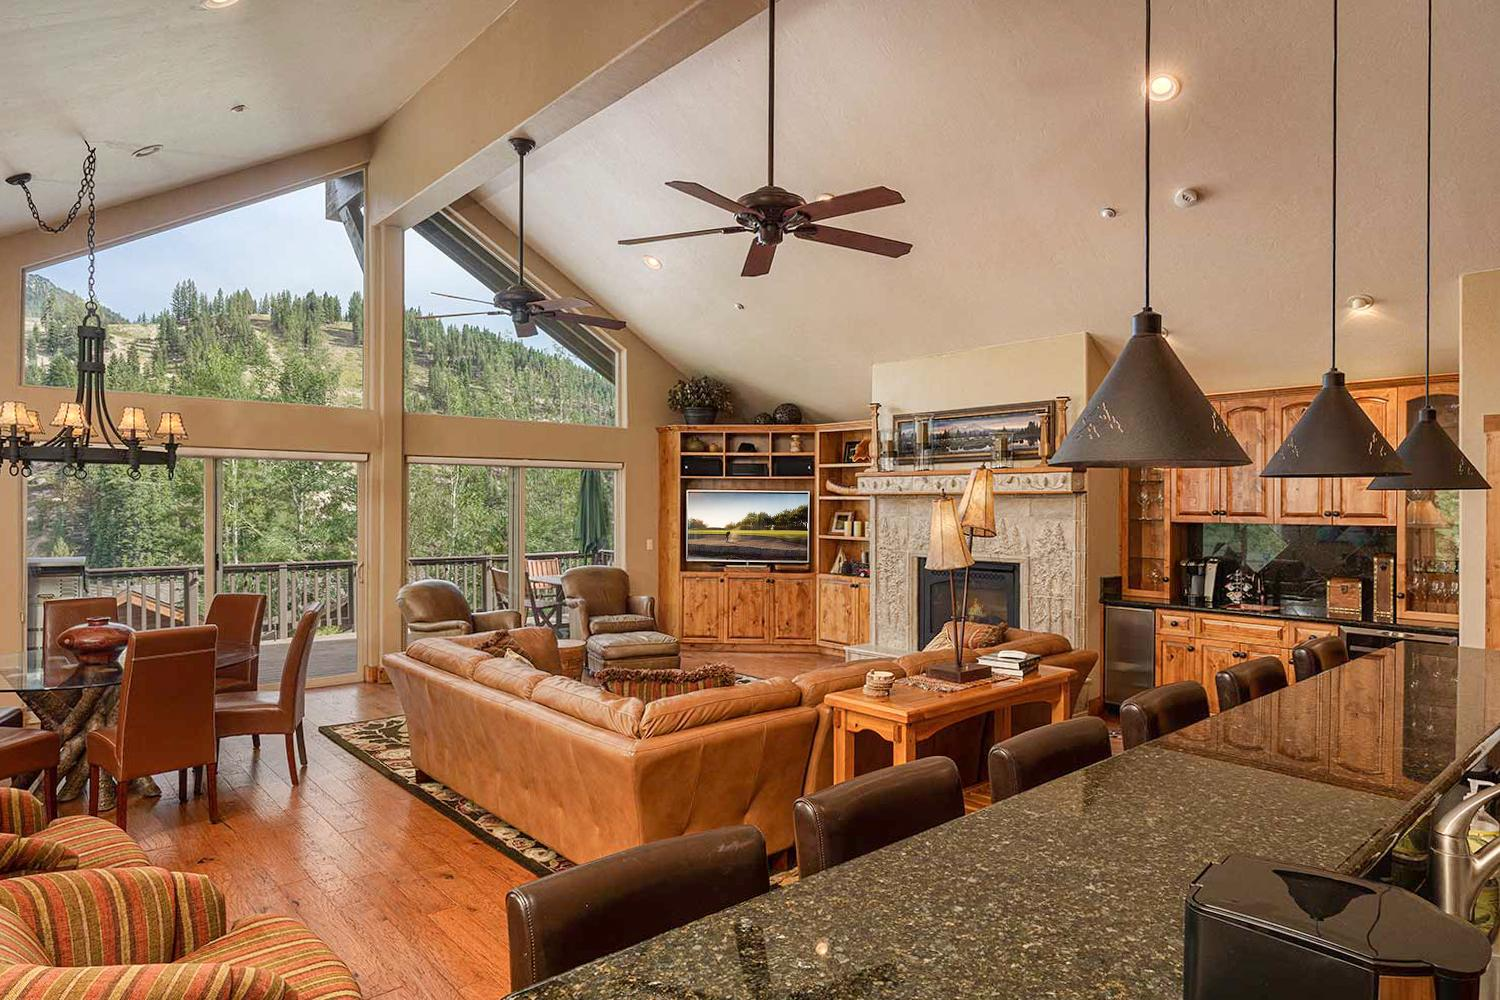 Property Image 1 - New Listing! Swiss Kiss Lodge w/ Mountain Views